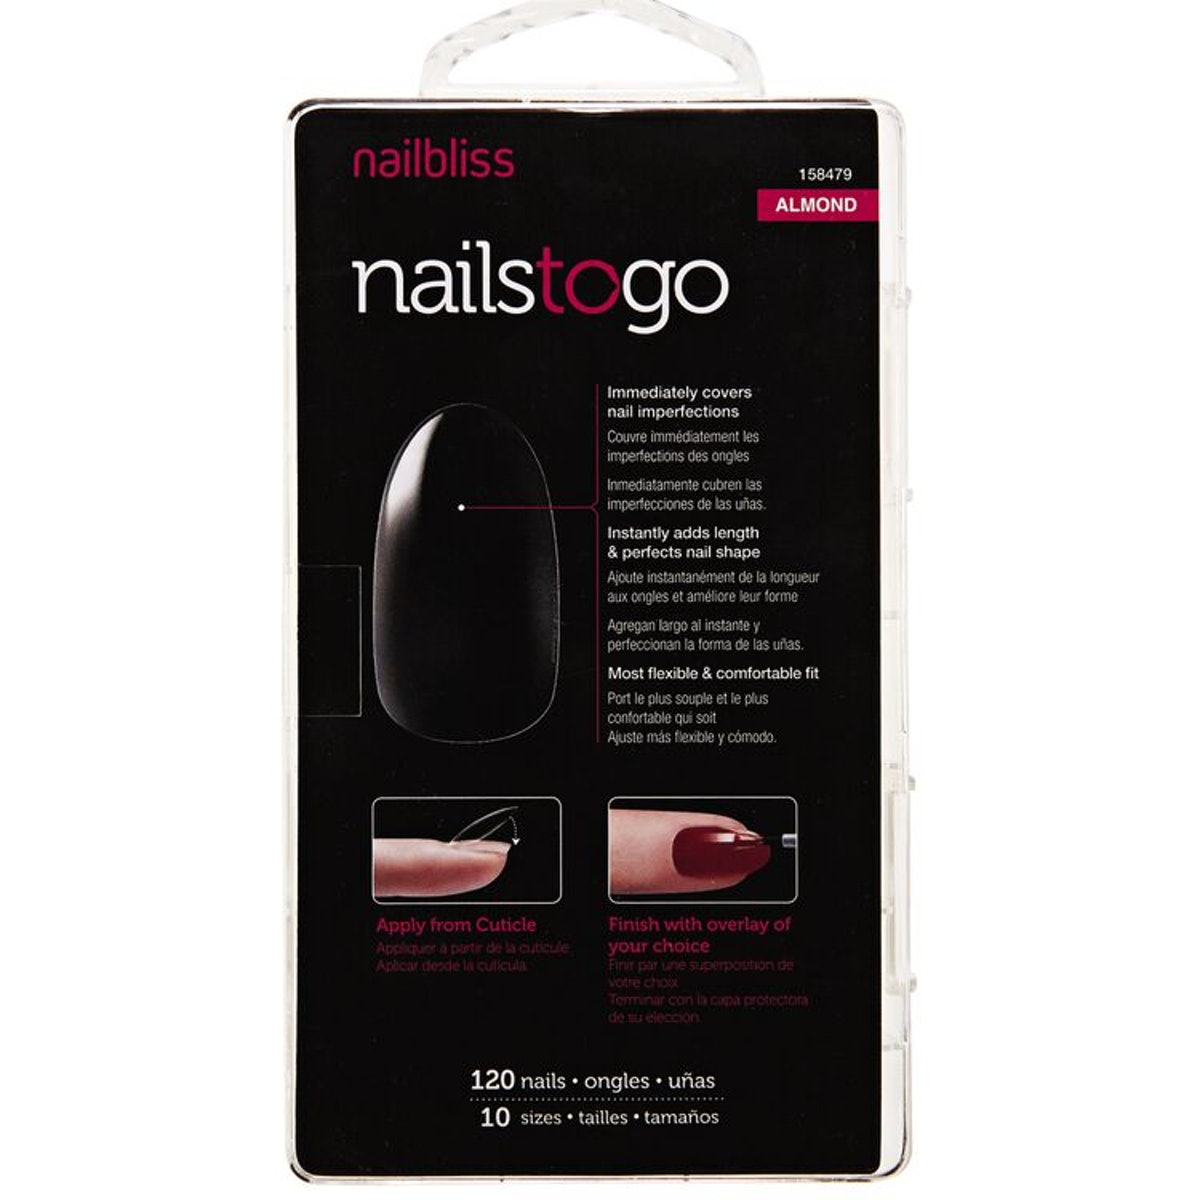 Nails to Go - Almond